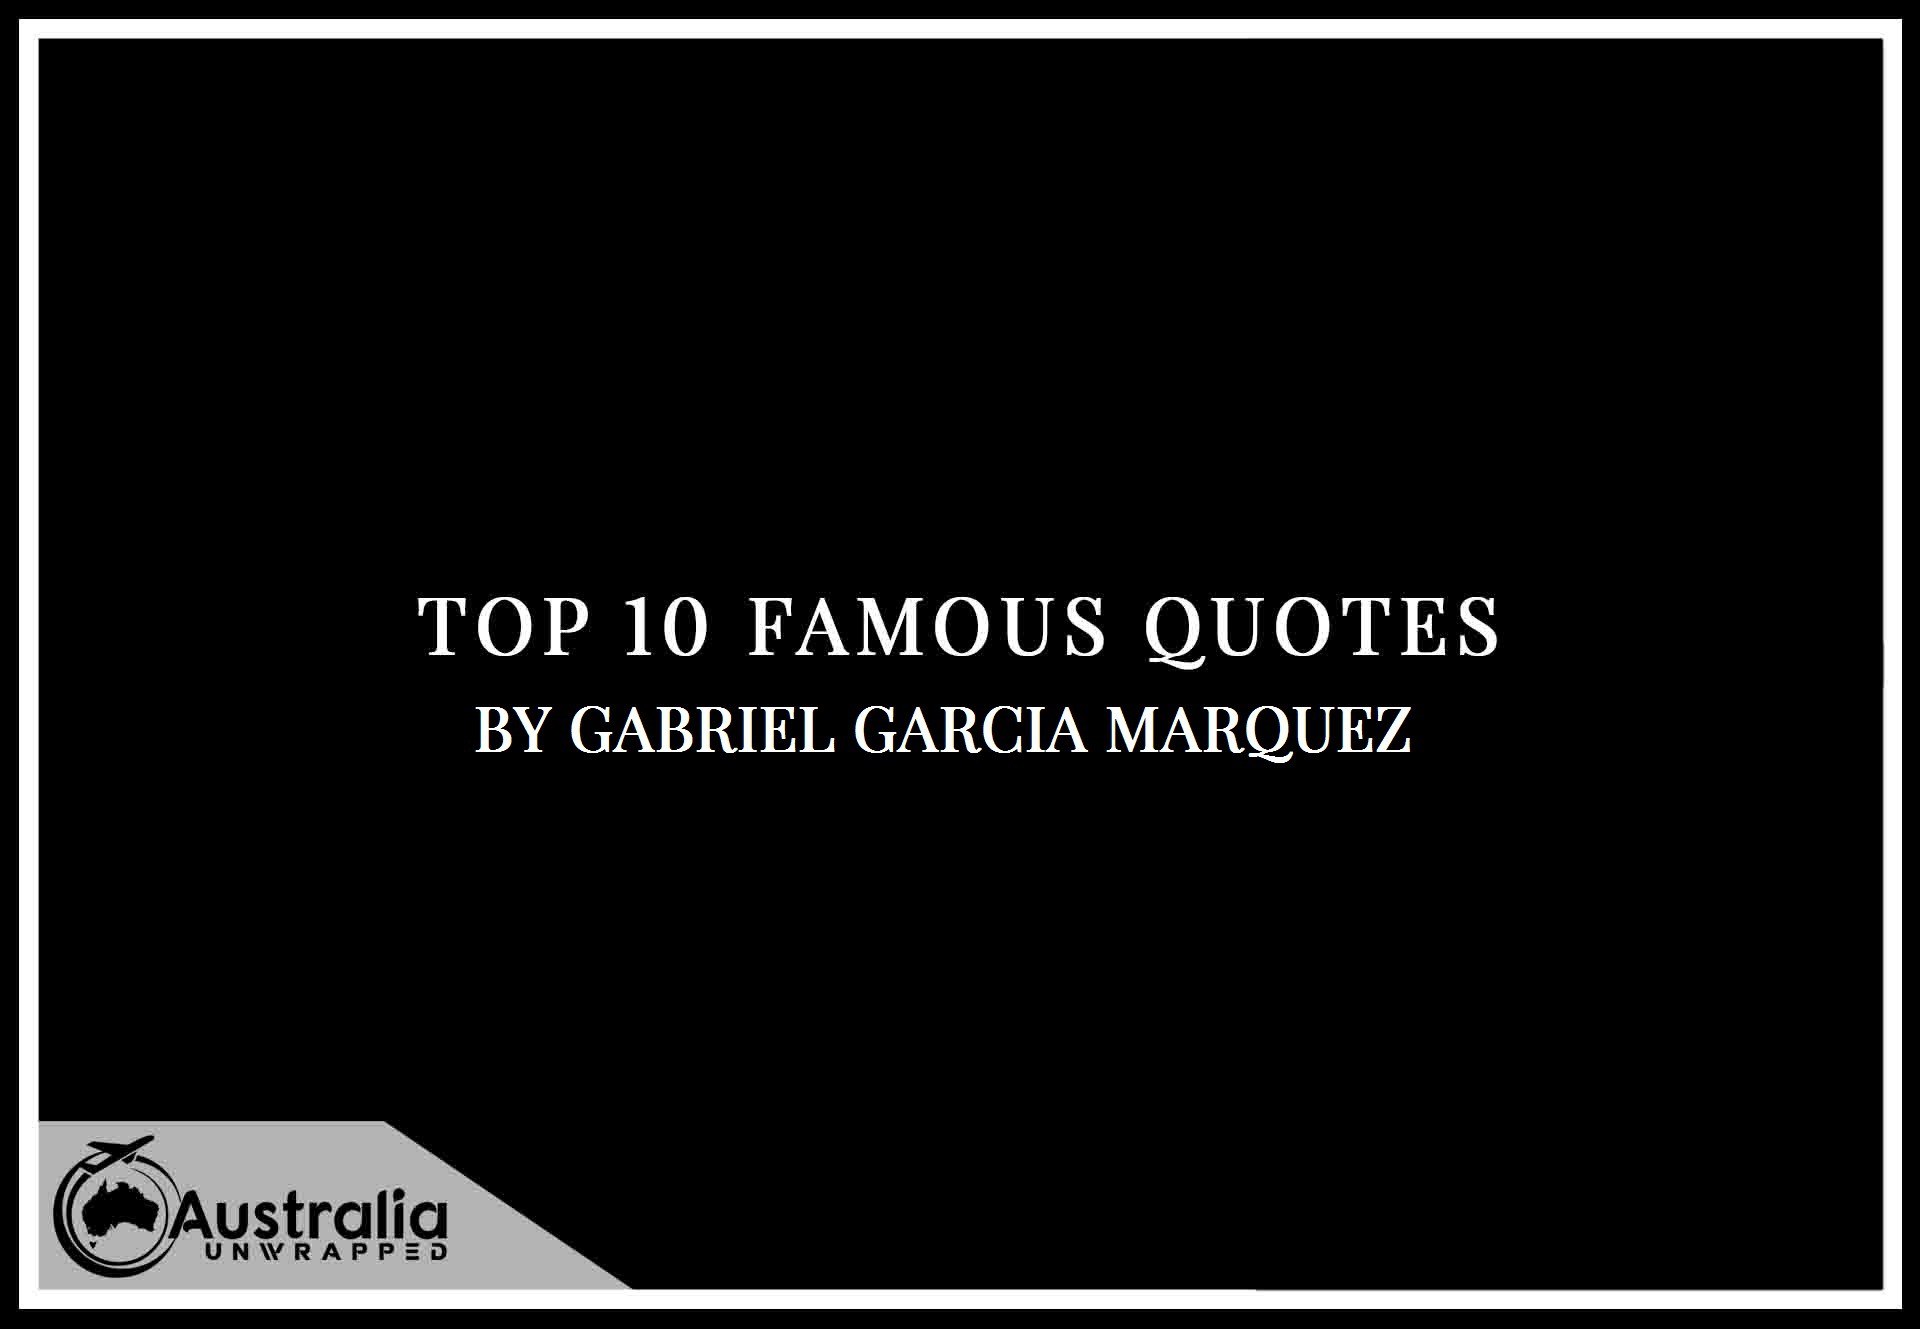 Gabriel Garcia Marquez's Top 10 Popular and Famous Quotes